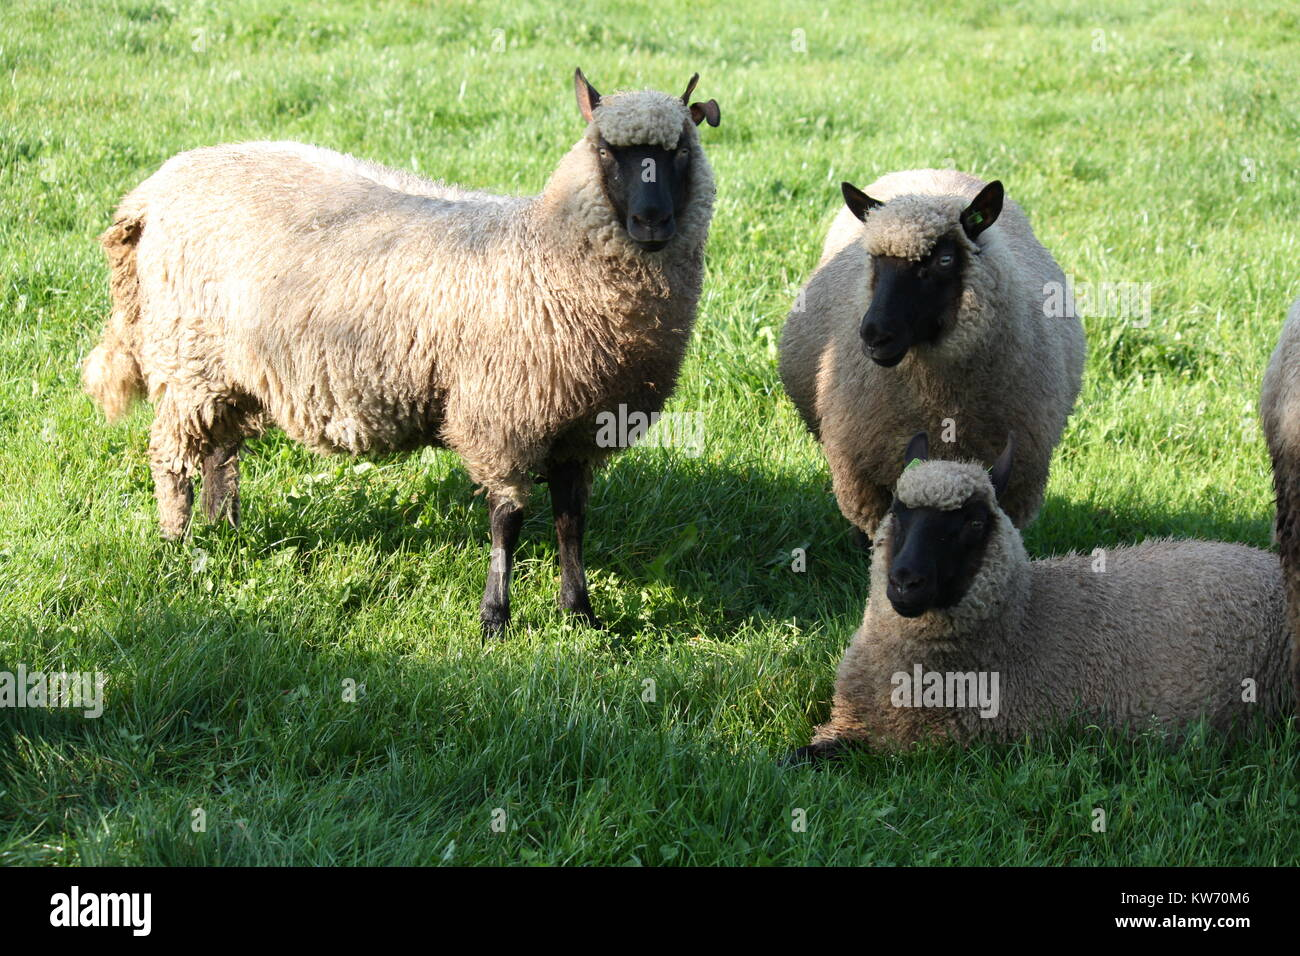 Dutch white sheep with a black face in the grass Stock Photo ... for Sheep Face Black And White  588gtk